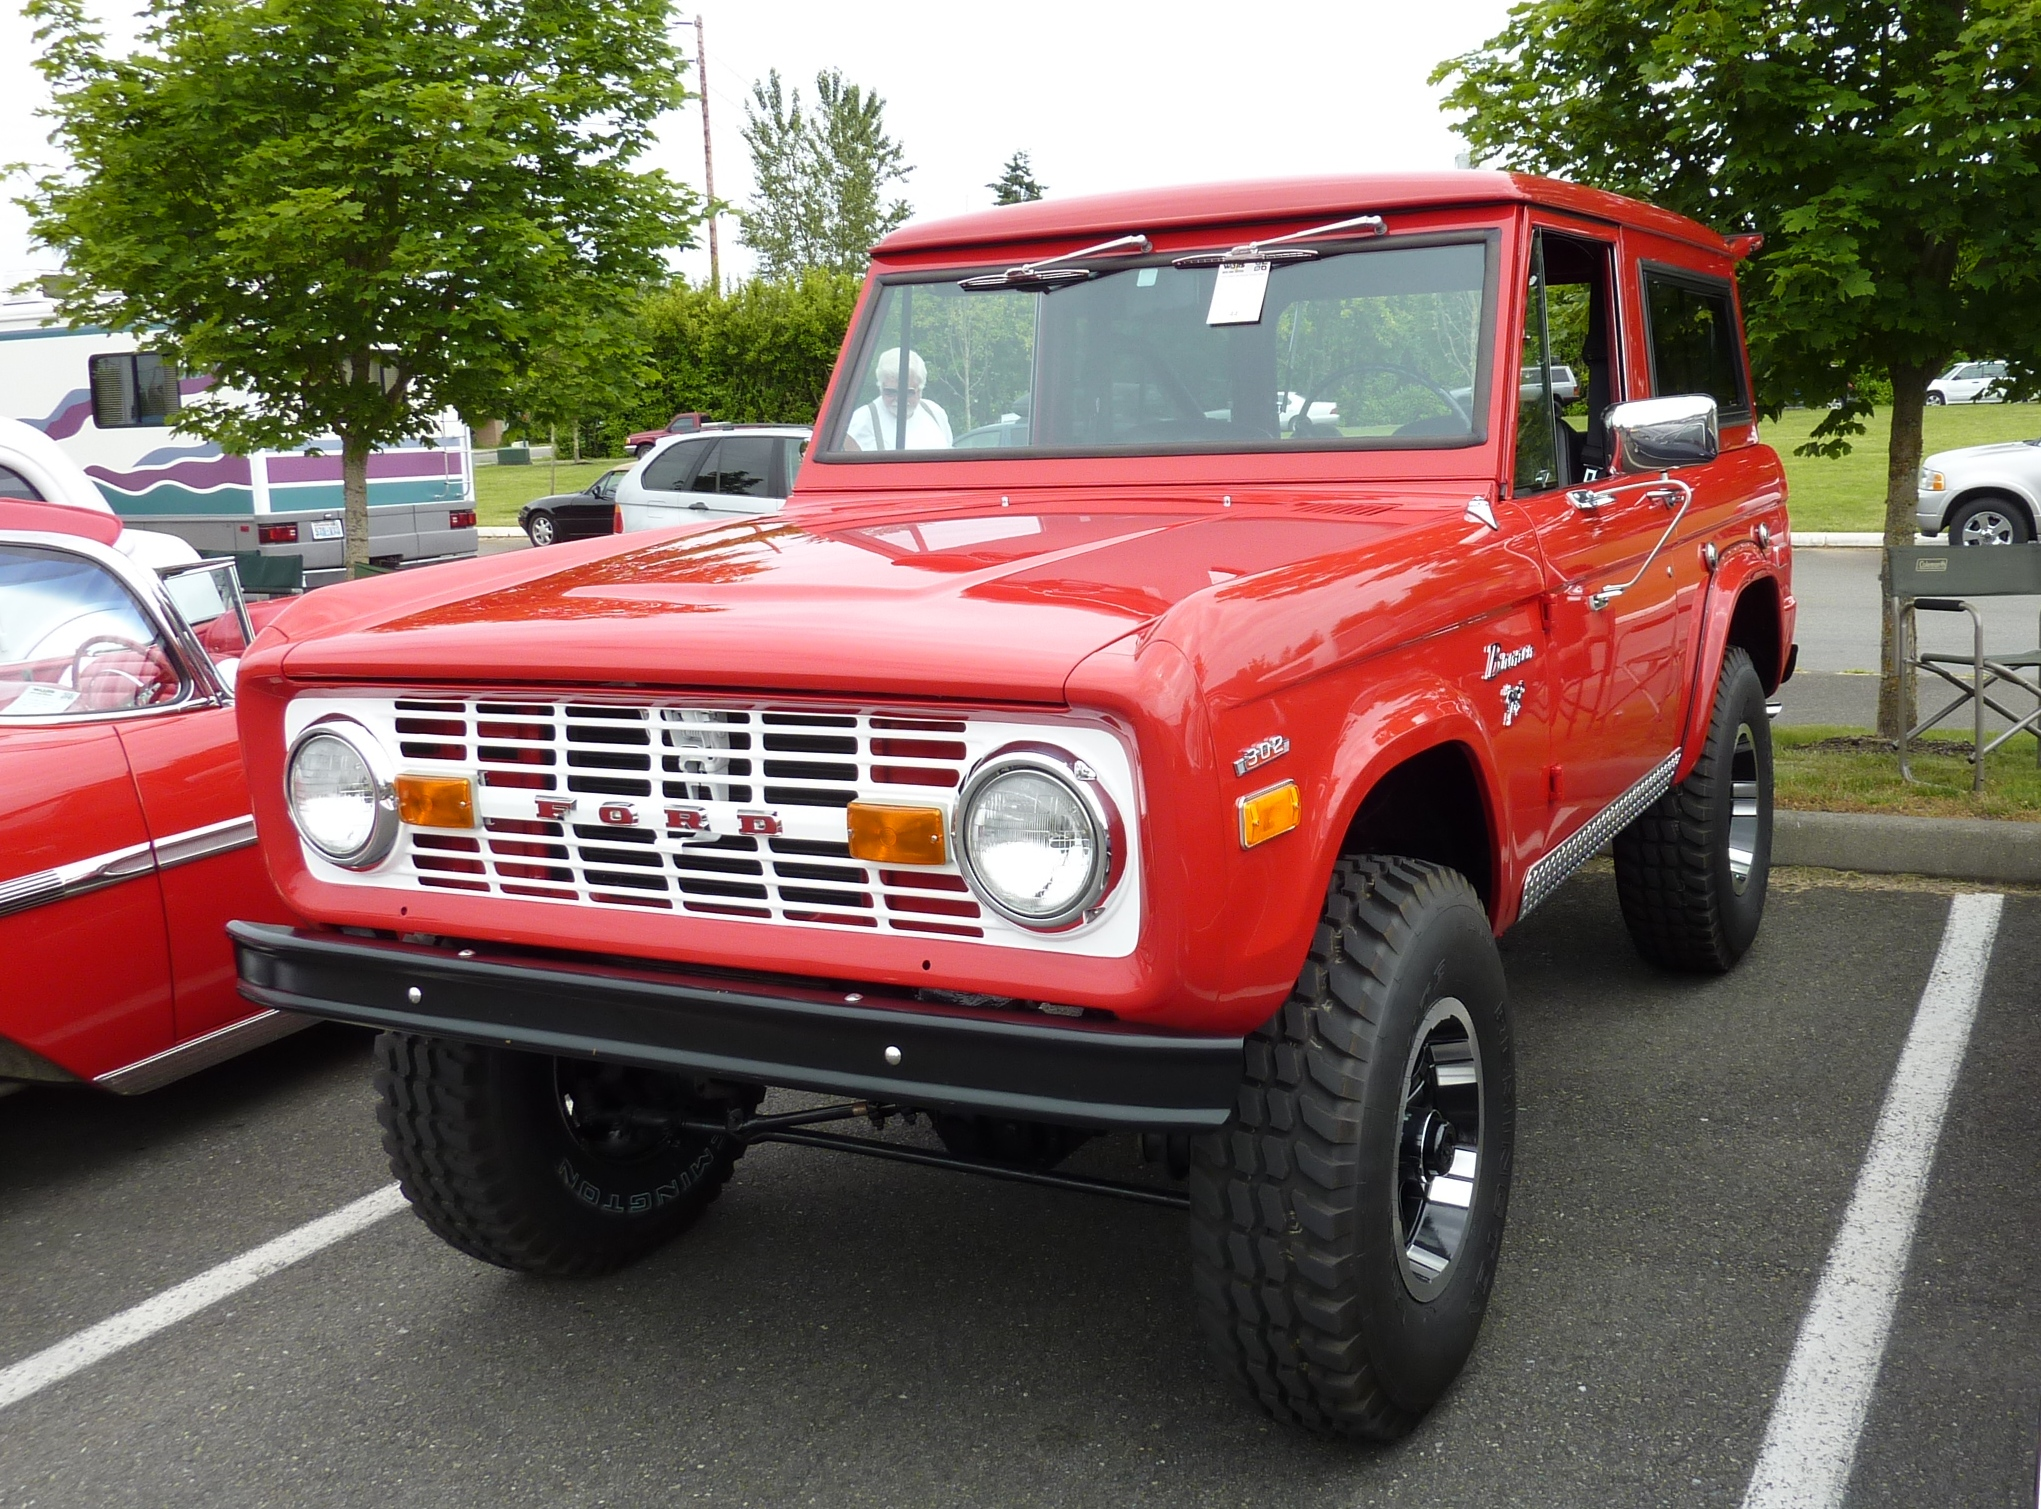 1971 Ford Bronco Interior 1971 Ford Bronco 1920 x 1080